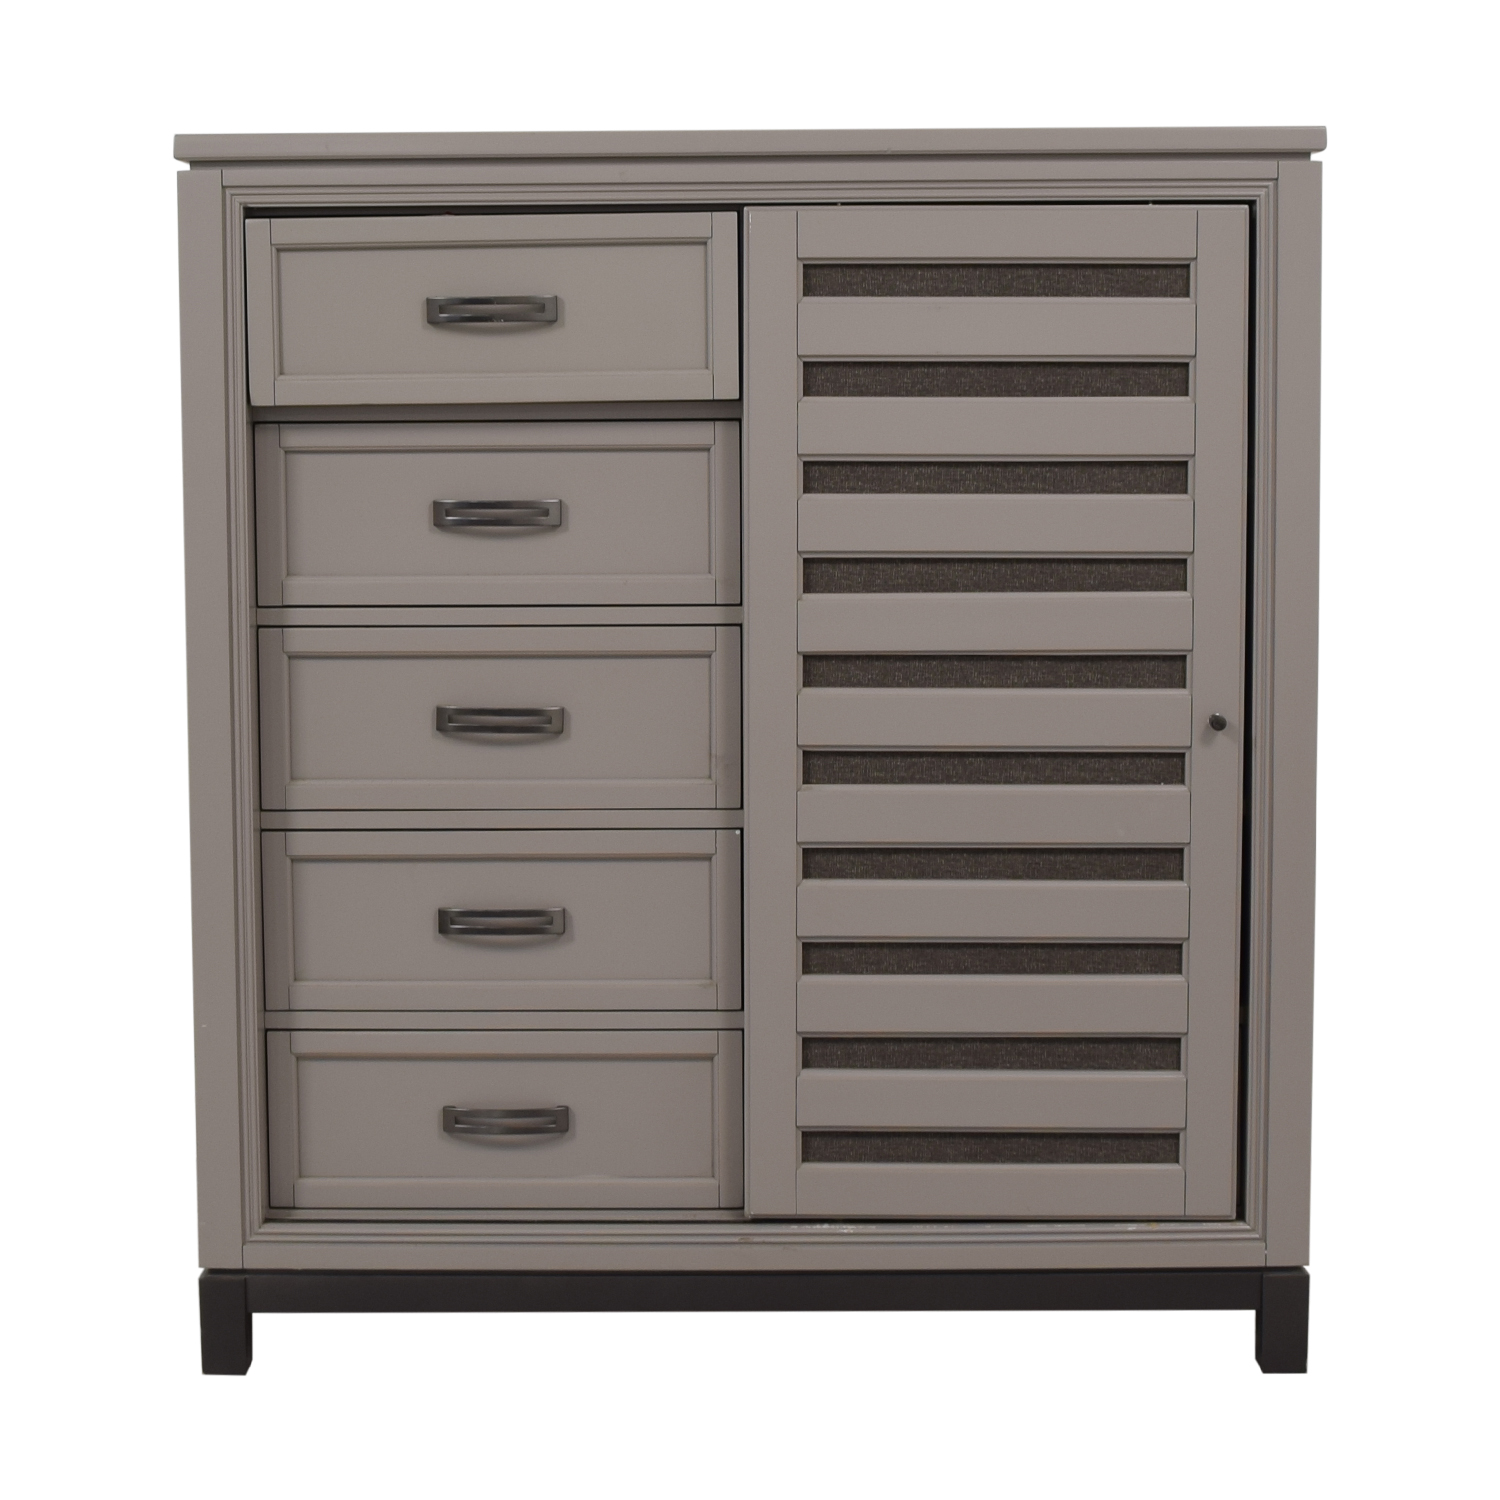 aspenhome Aspenhome Hyde Park Traditional Sliding Door Chest